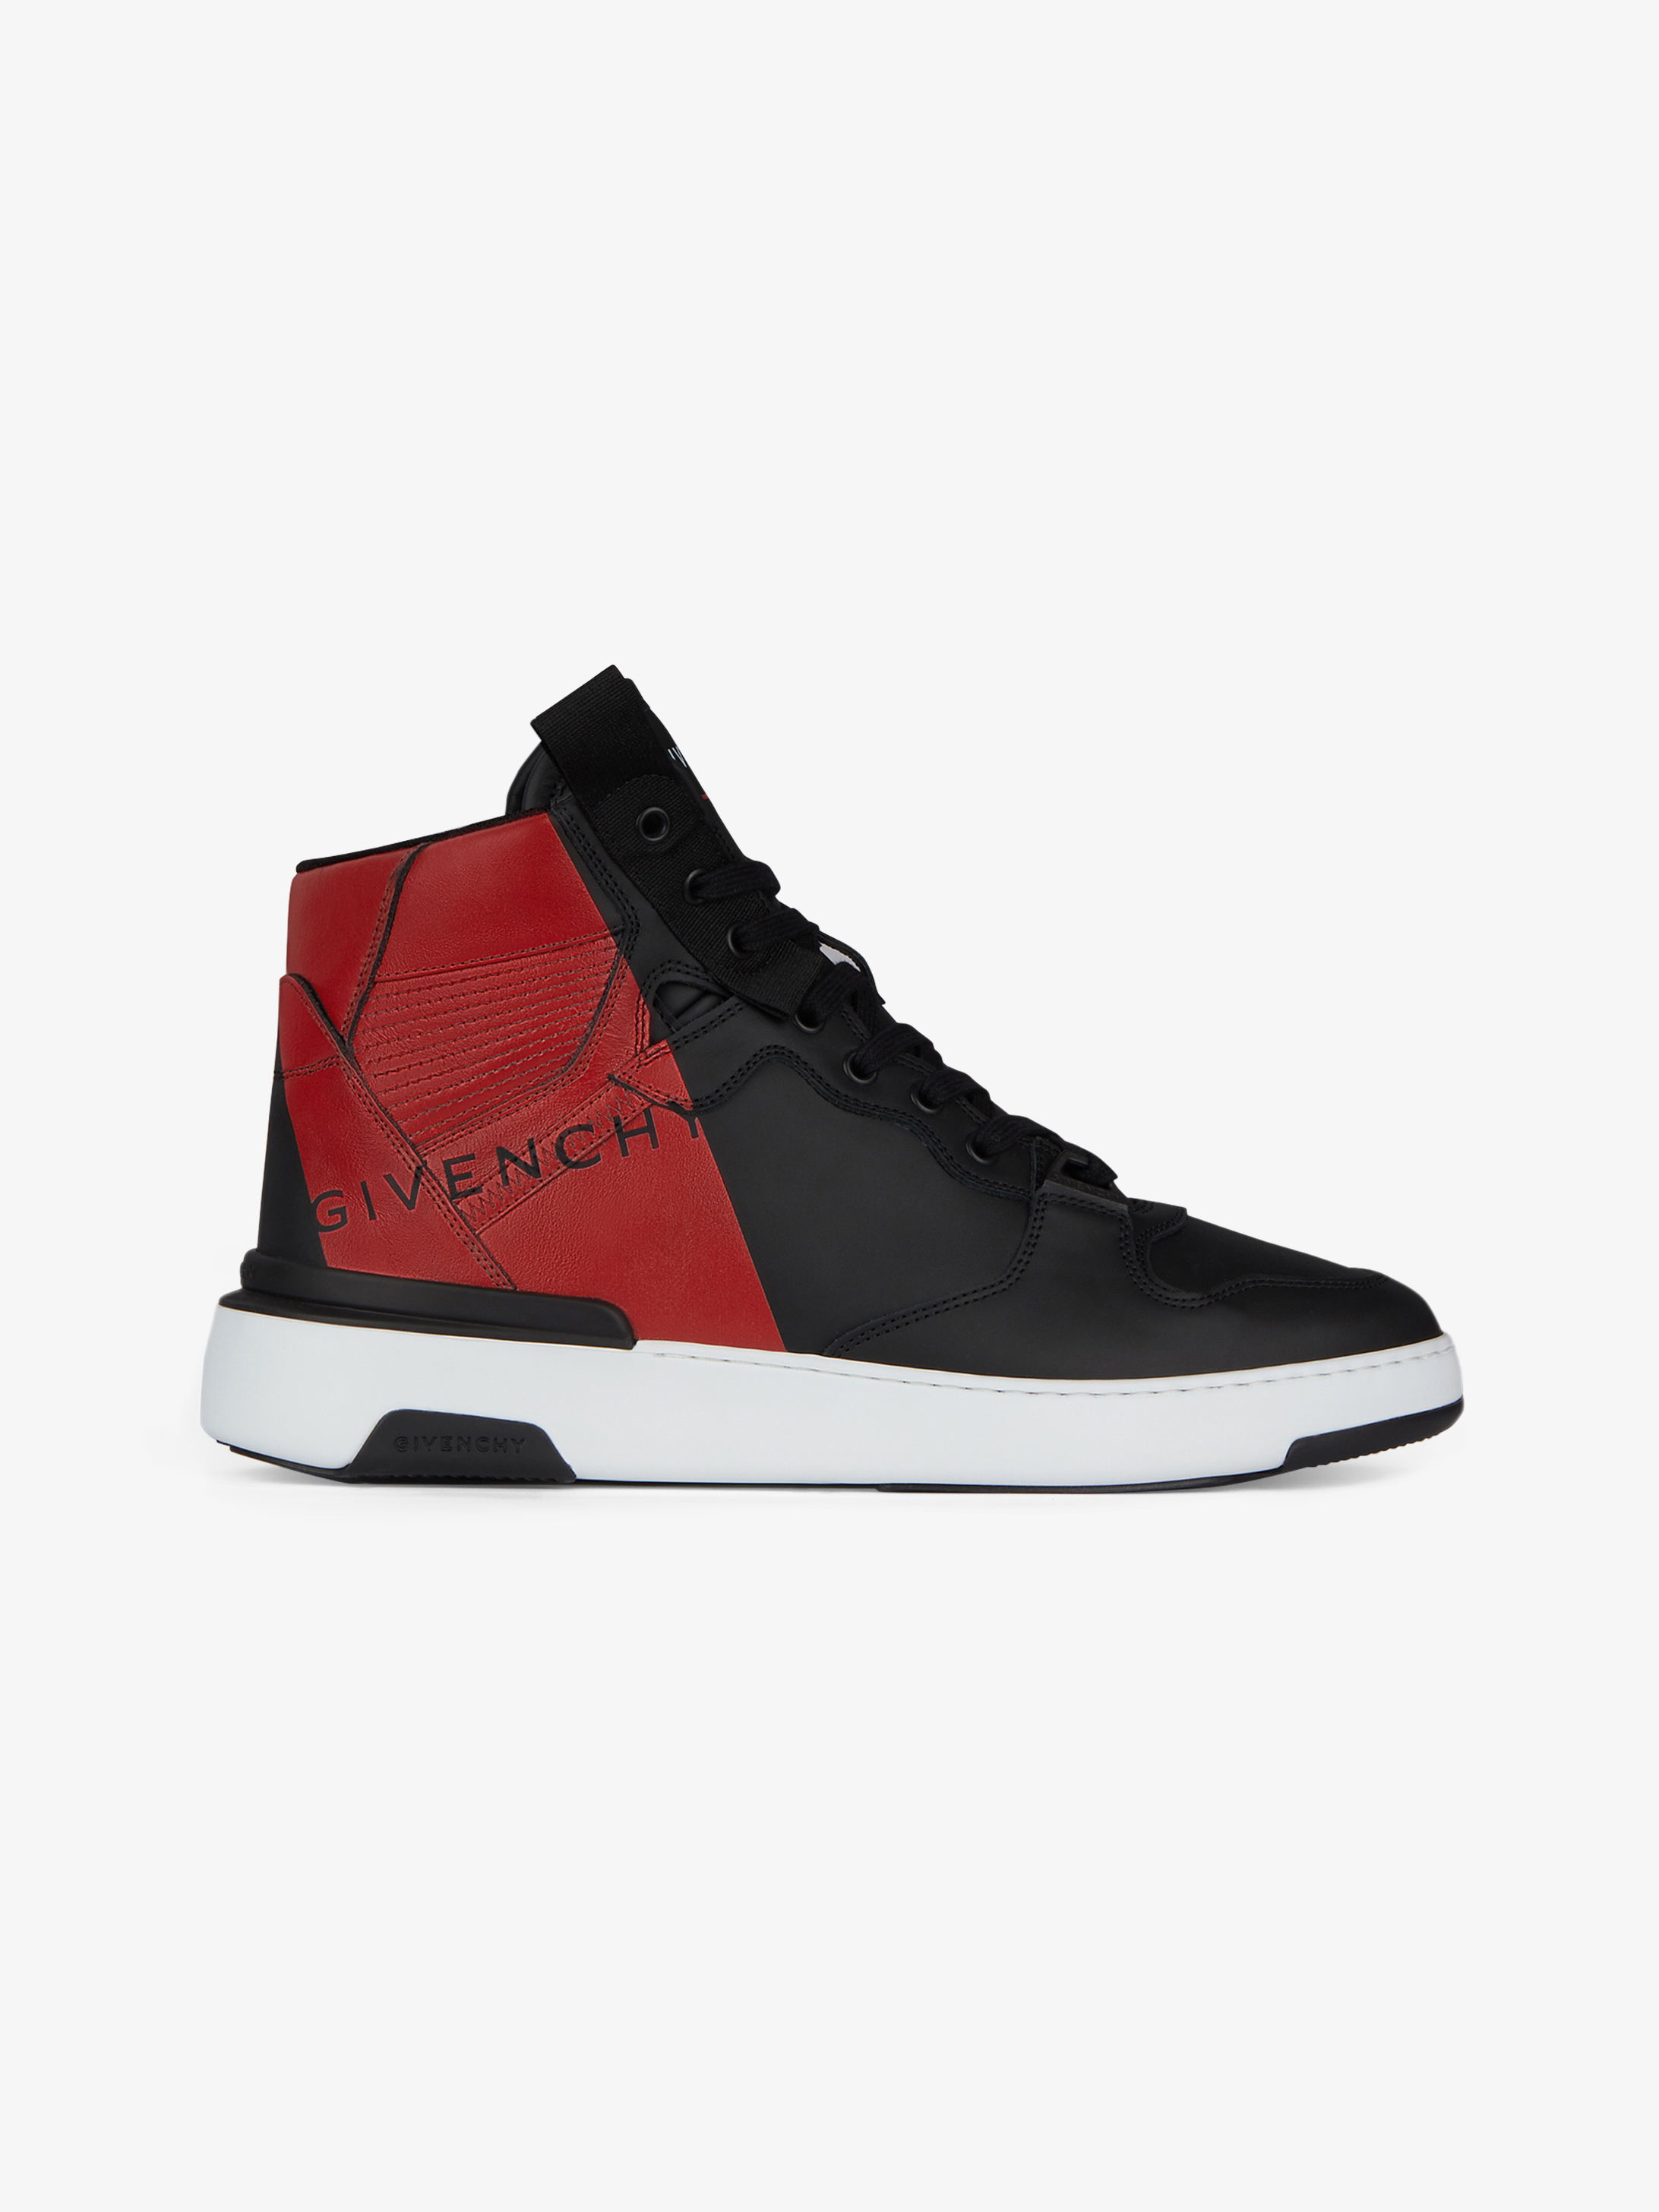 Sneakers montantes Wing GIVENCHY en cuir